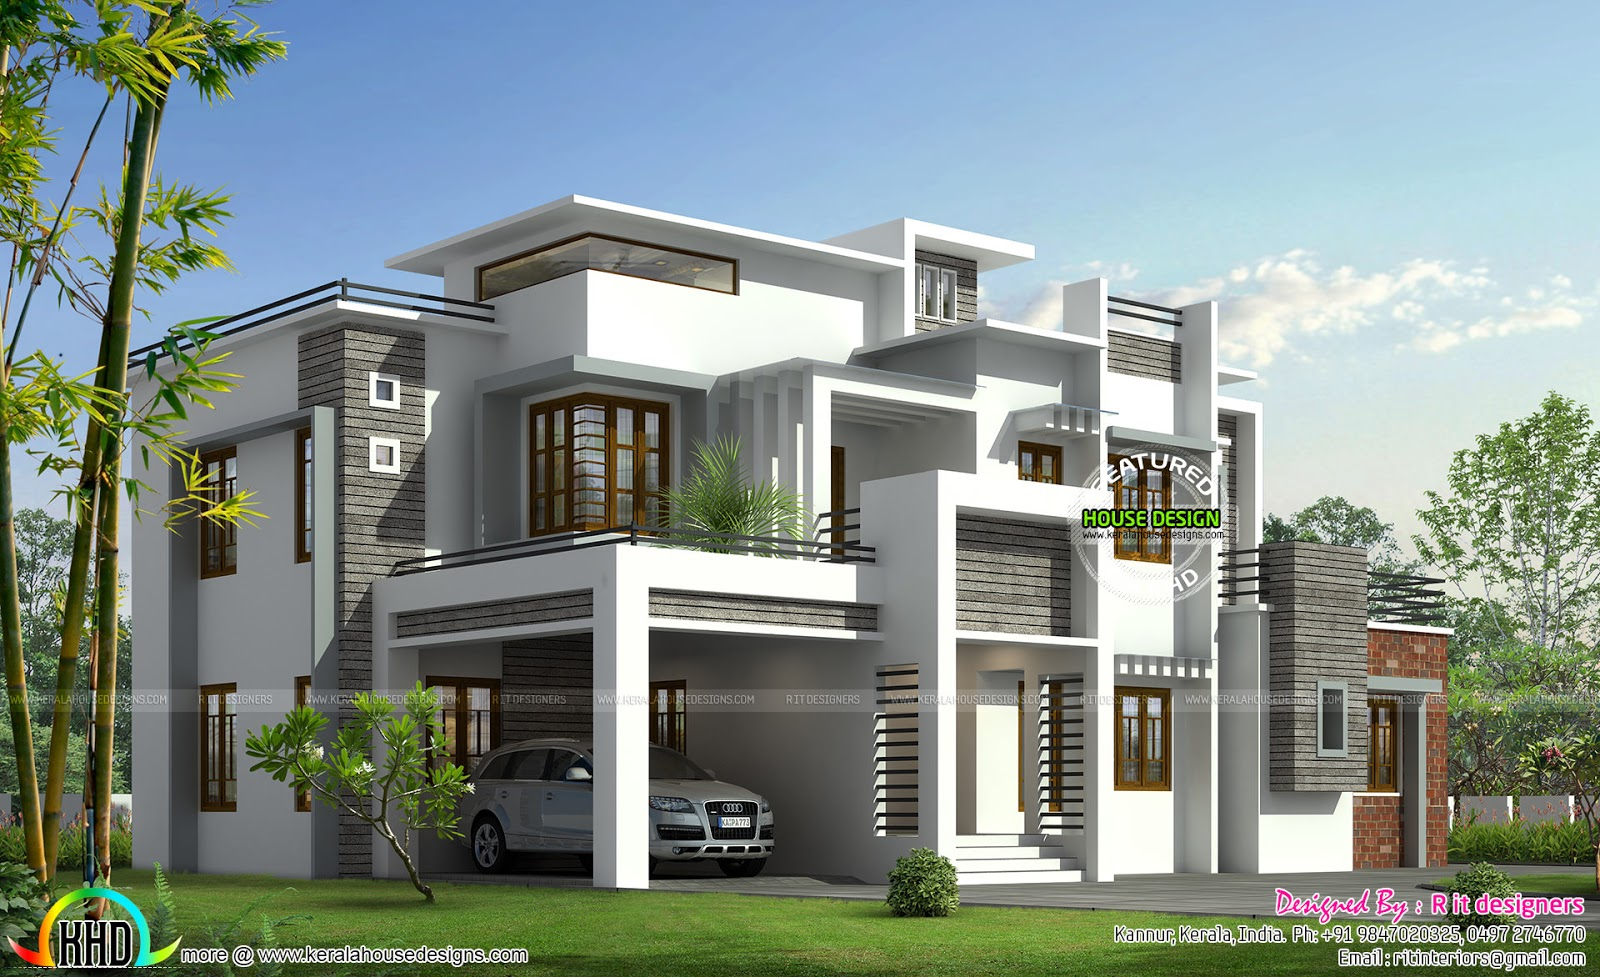 Box model contemporary house kerala home design and for Small indian house plans modern